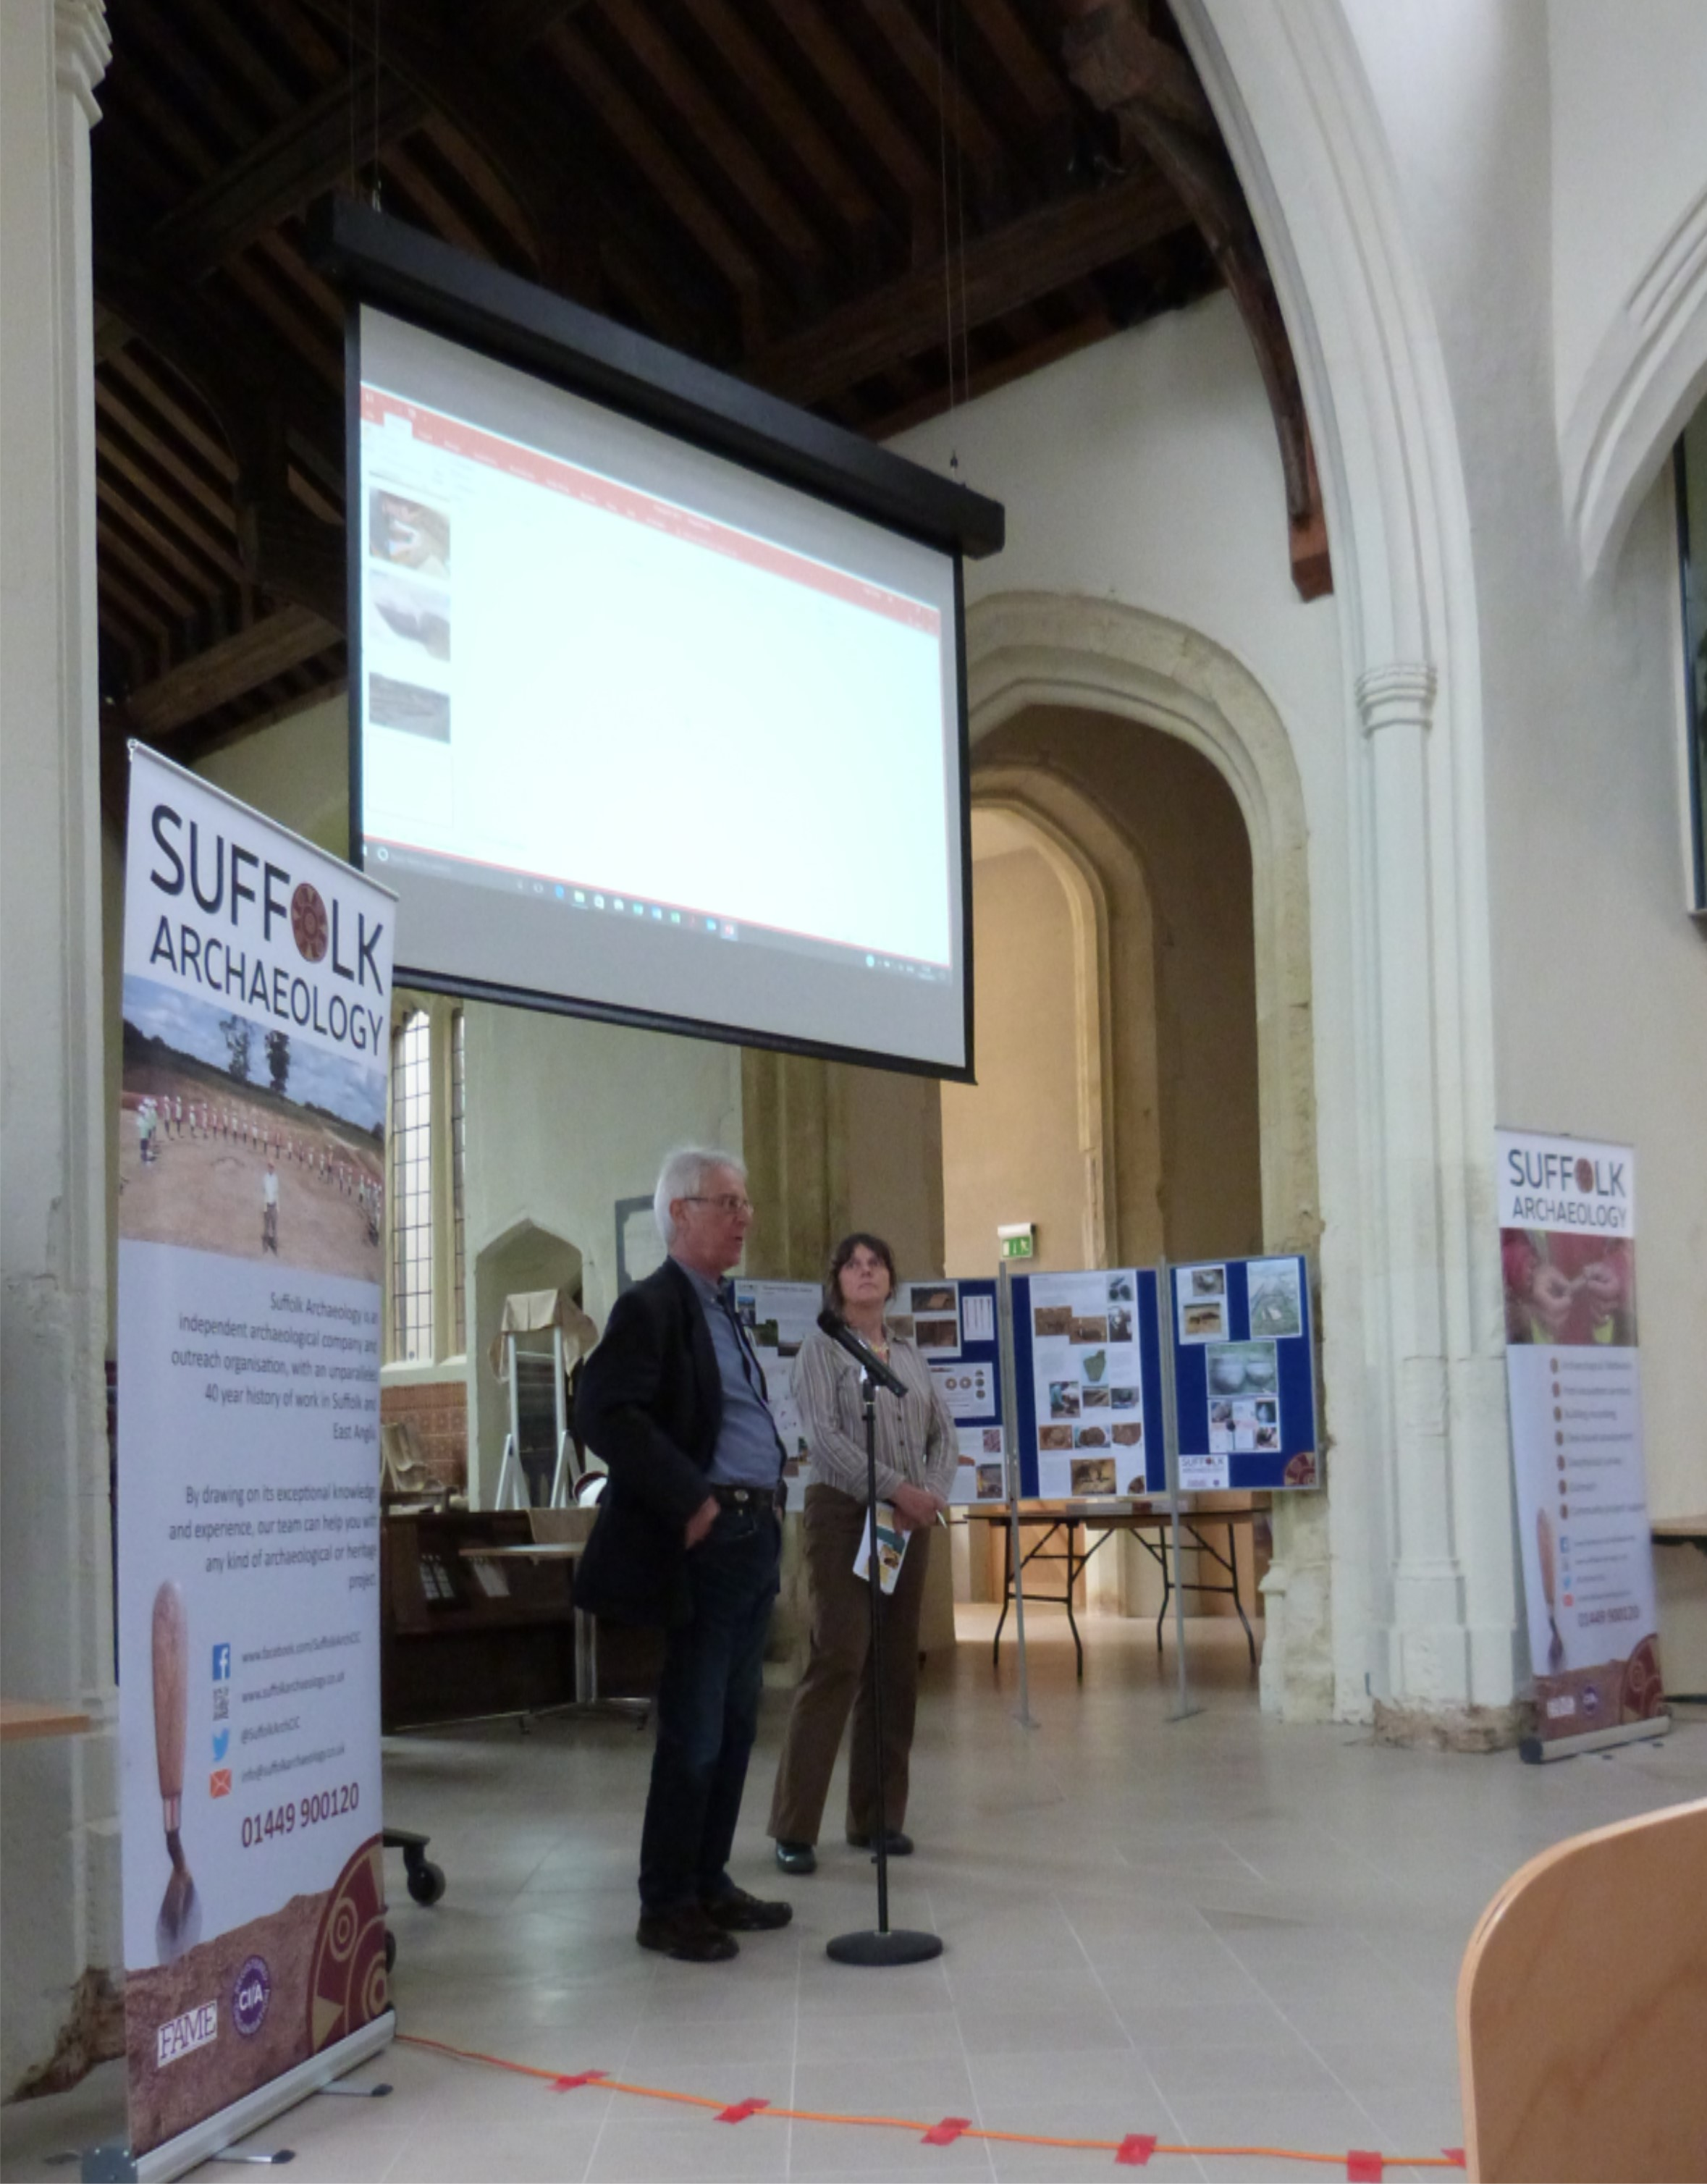 Jo Caruth and Keith Wade, opening the conference